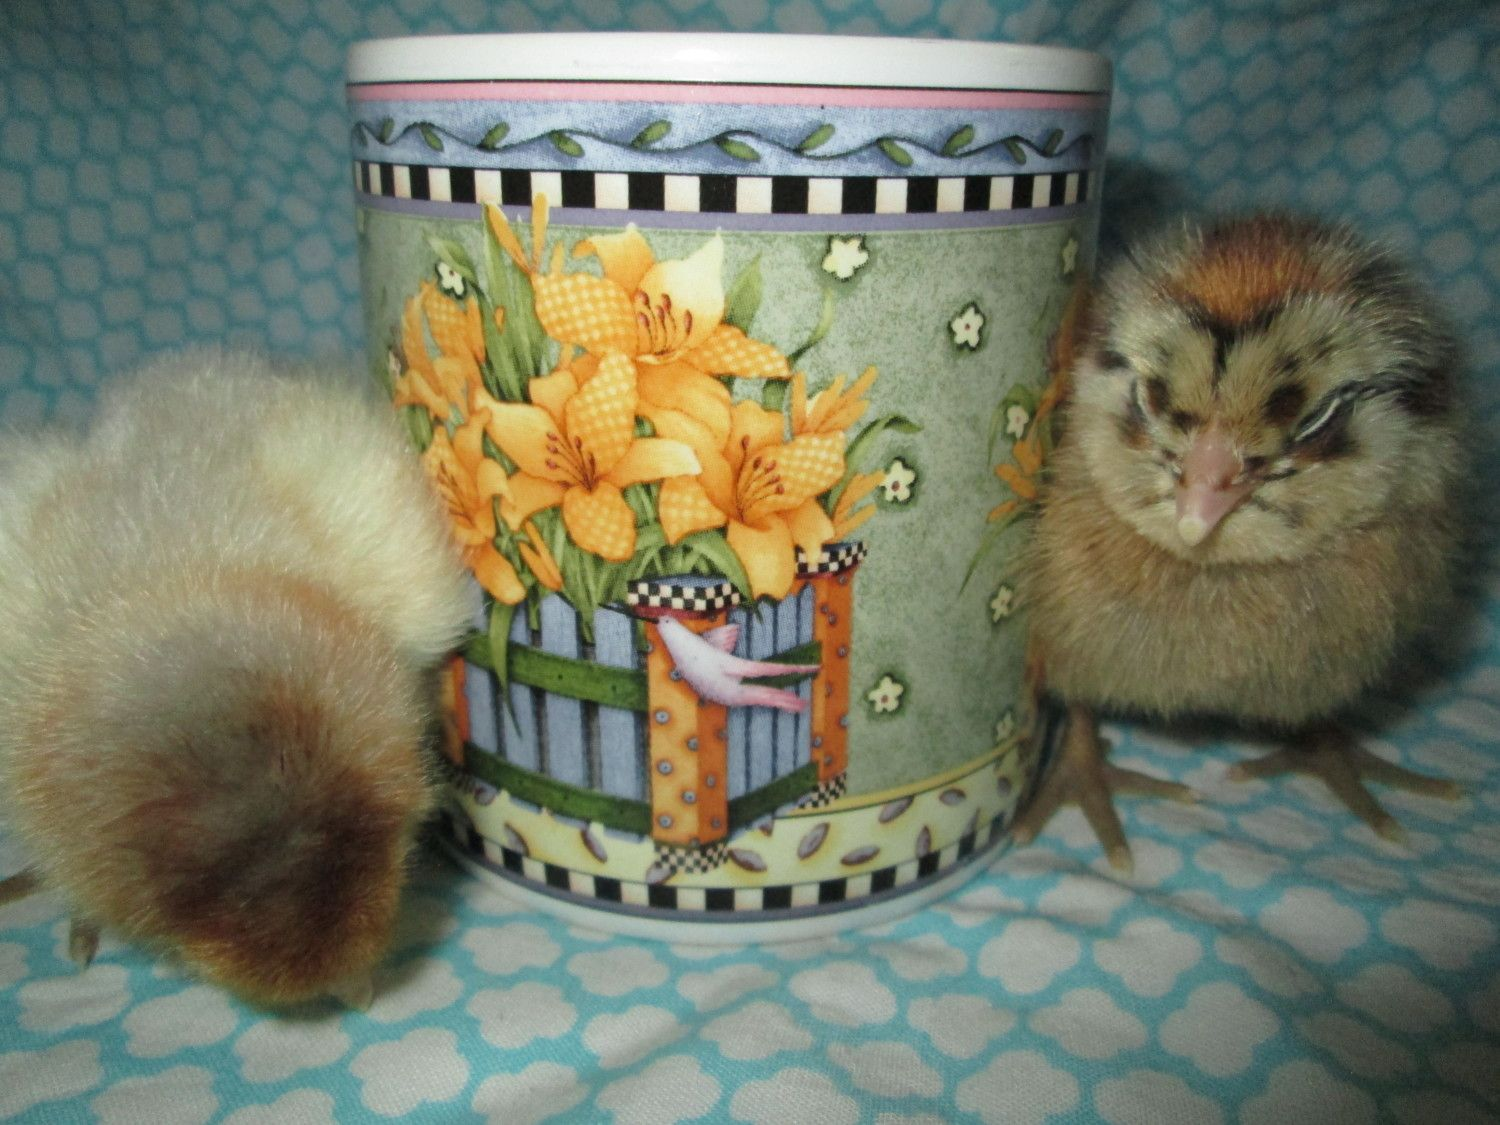 Cynthia12's photos in Chick Mug Shots a Contest thread for participants of the Springing in the Chicks Hatch A Long